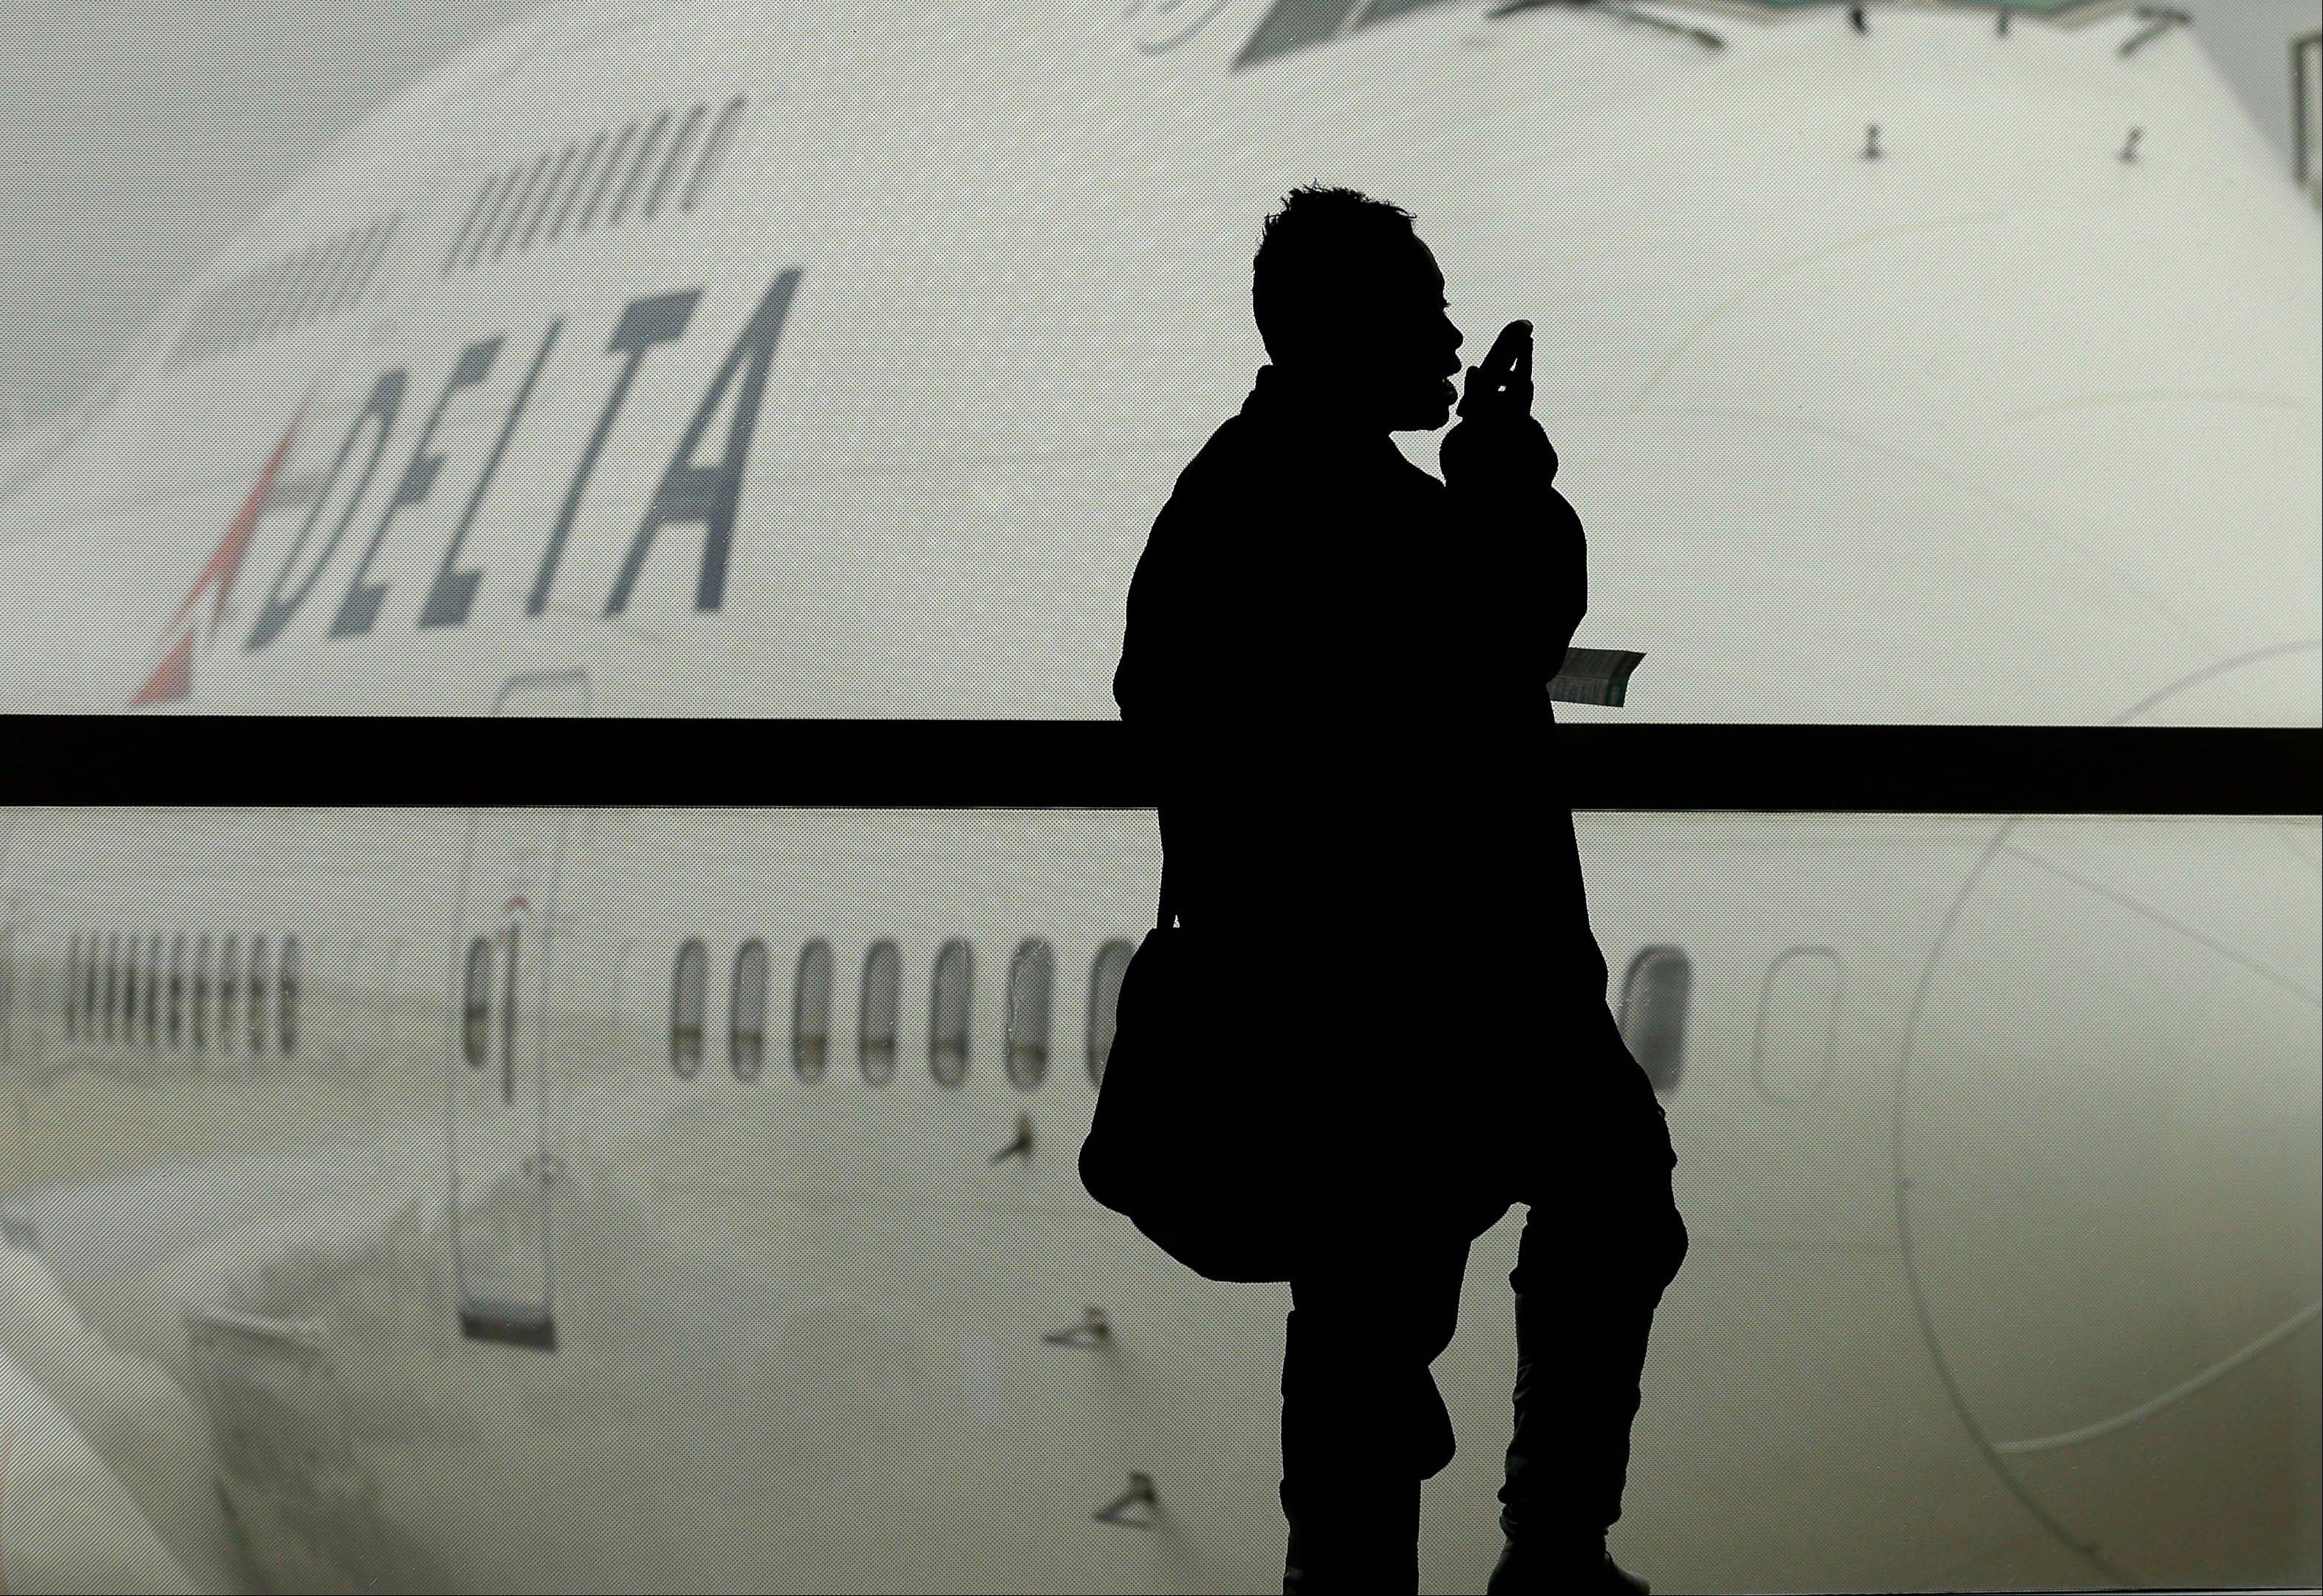 A traveler on Delta Airlines waits for her flight in Detroit. As federal regulators consider removing a decades-old prohibition on making phone calls on planes, a majority of air travelers oppose such a change, a new Associated Press poll reported Wednesday.